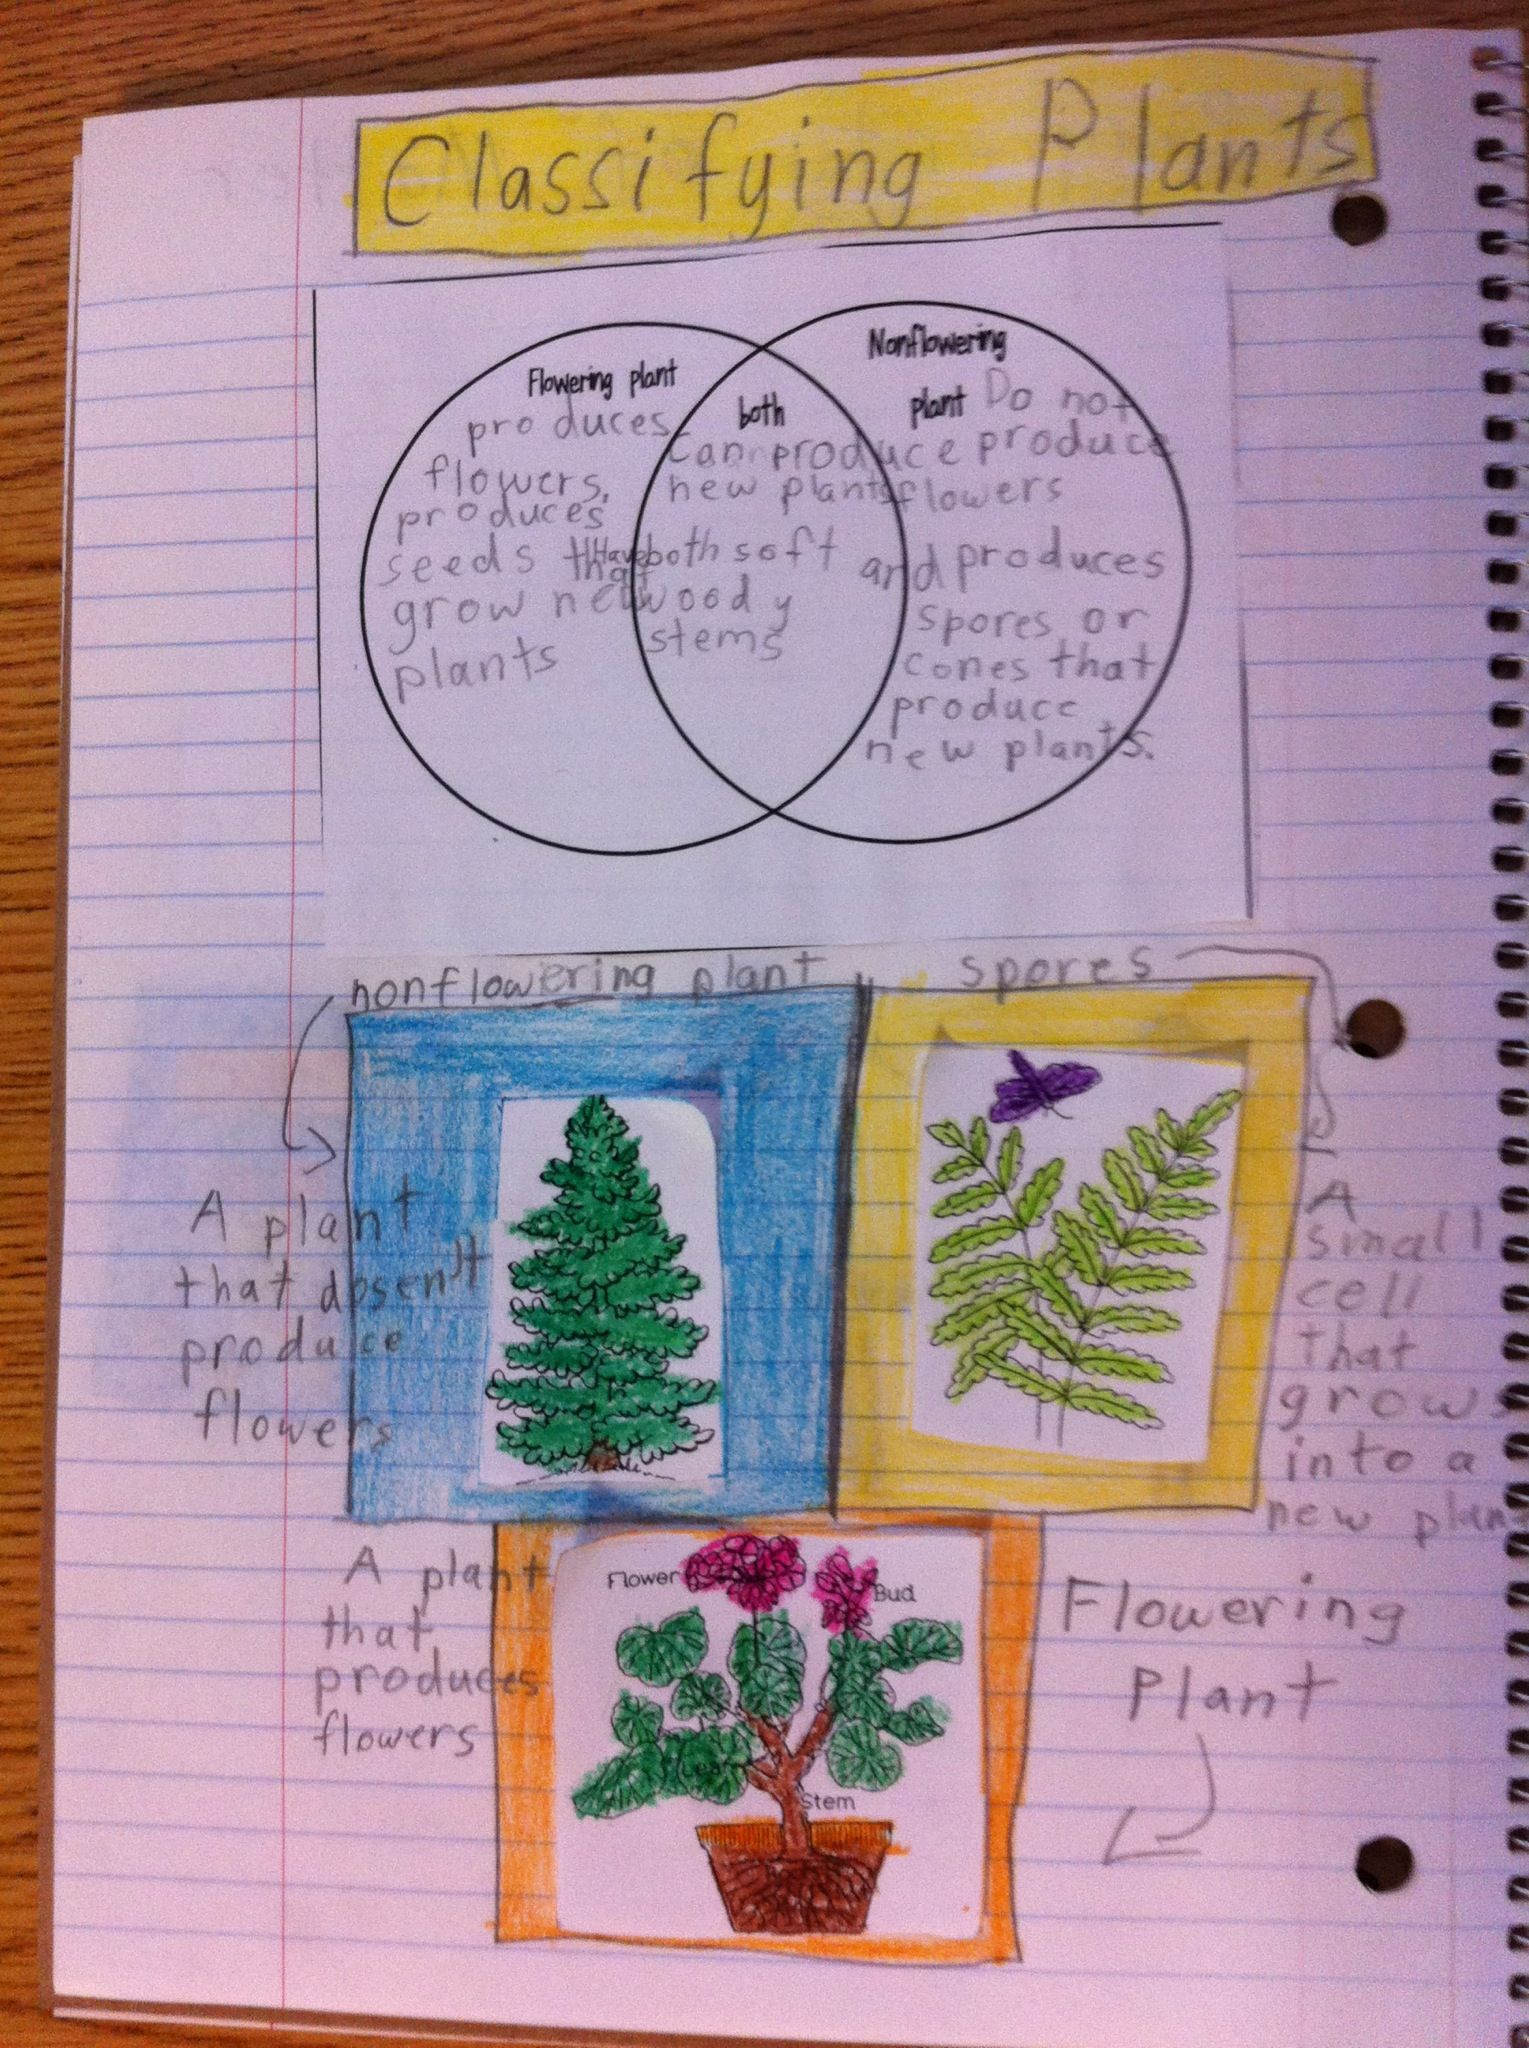 classifying plants interactive science journal big idea